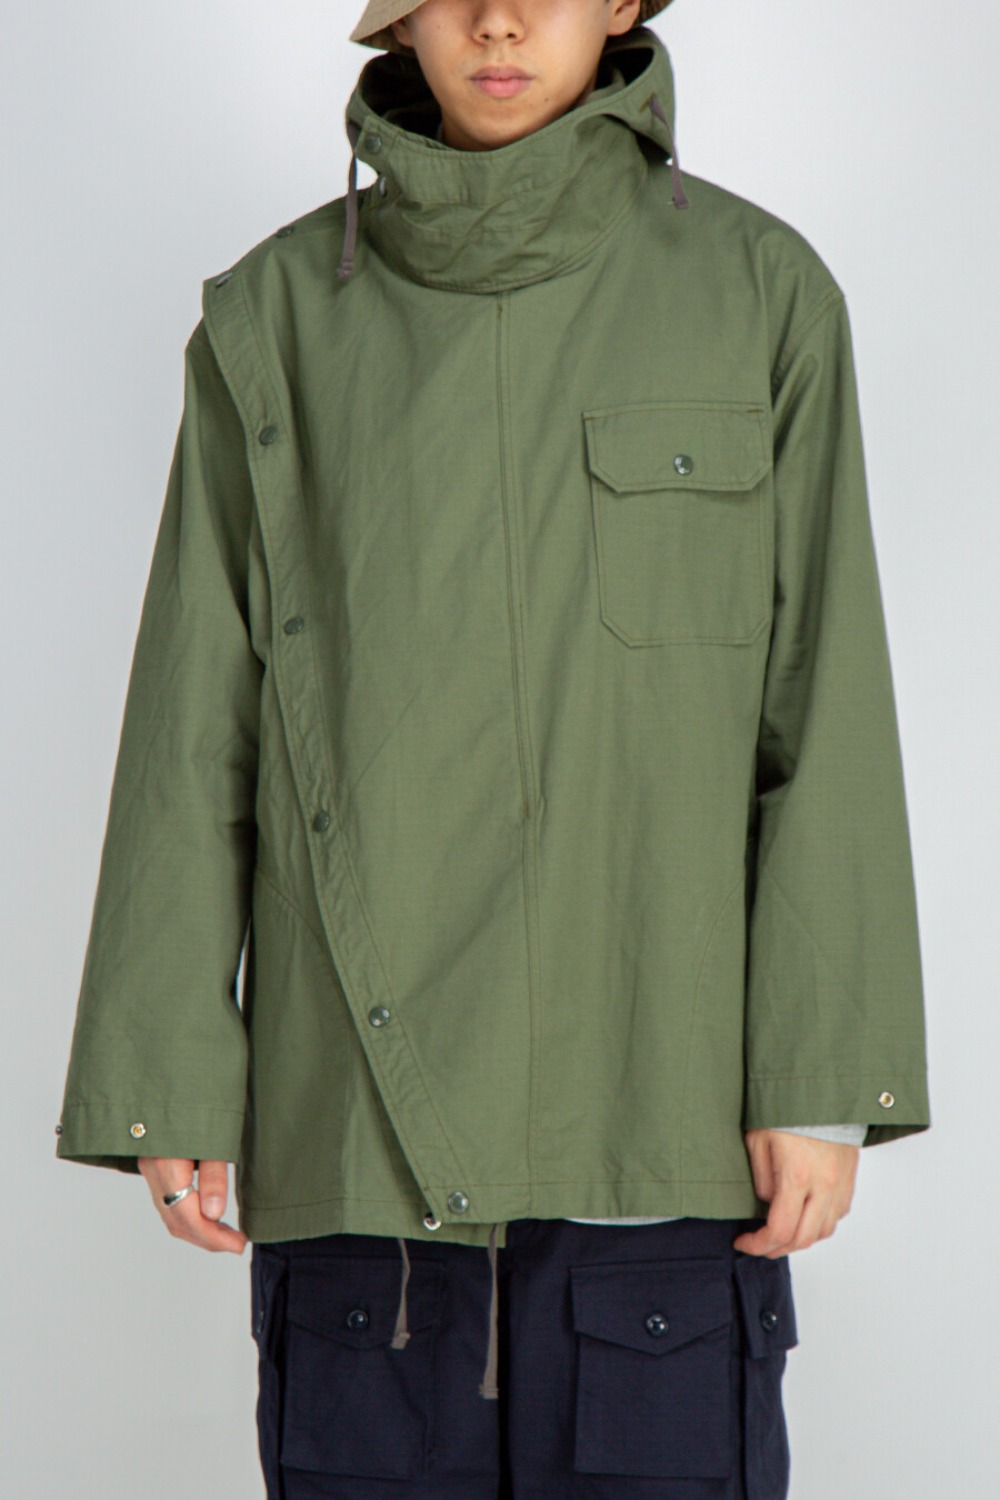 SONOR SHIRT JACKET COTTON RIPSTOP OLIVE